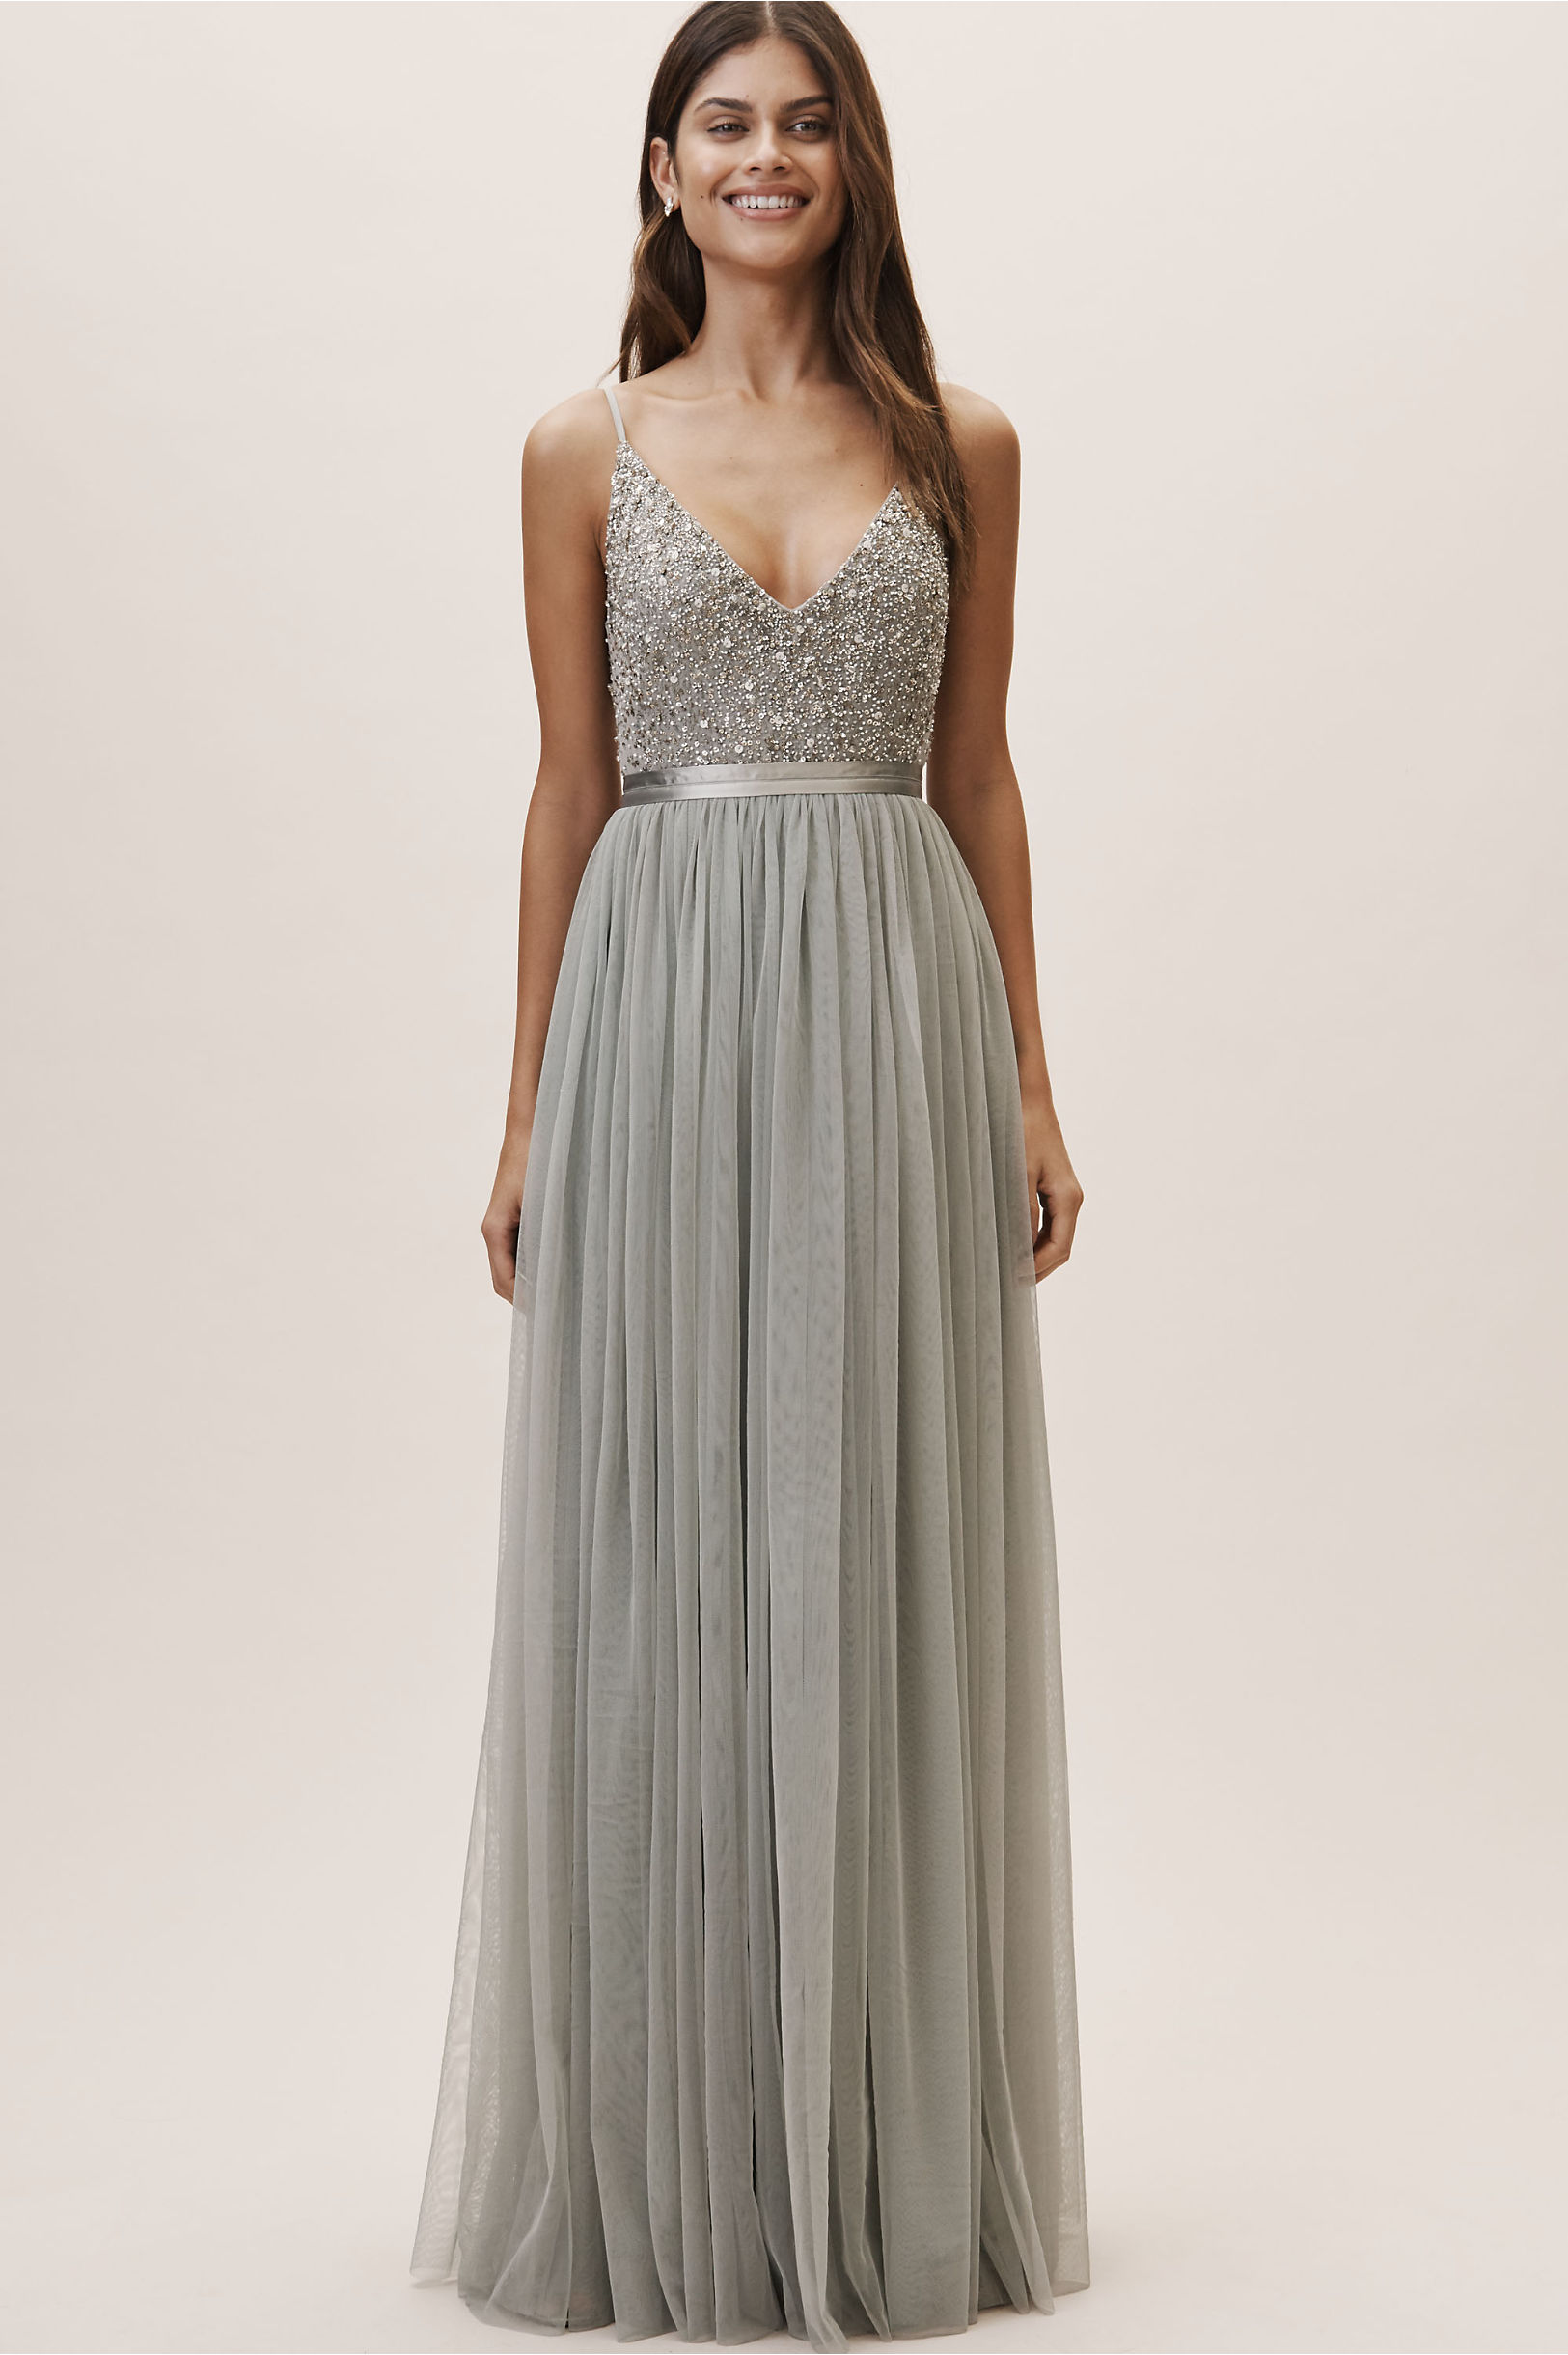 2051d8c6afa Avery Dress Morning Mist in Bridesmaids   Bridal Party